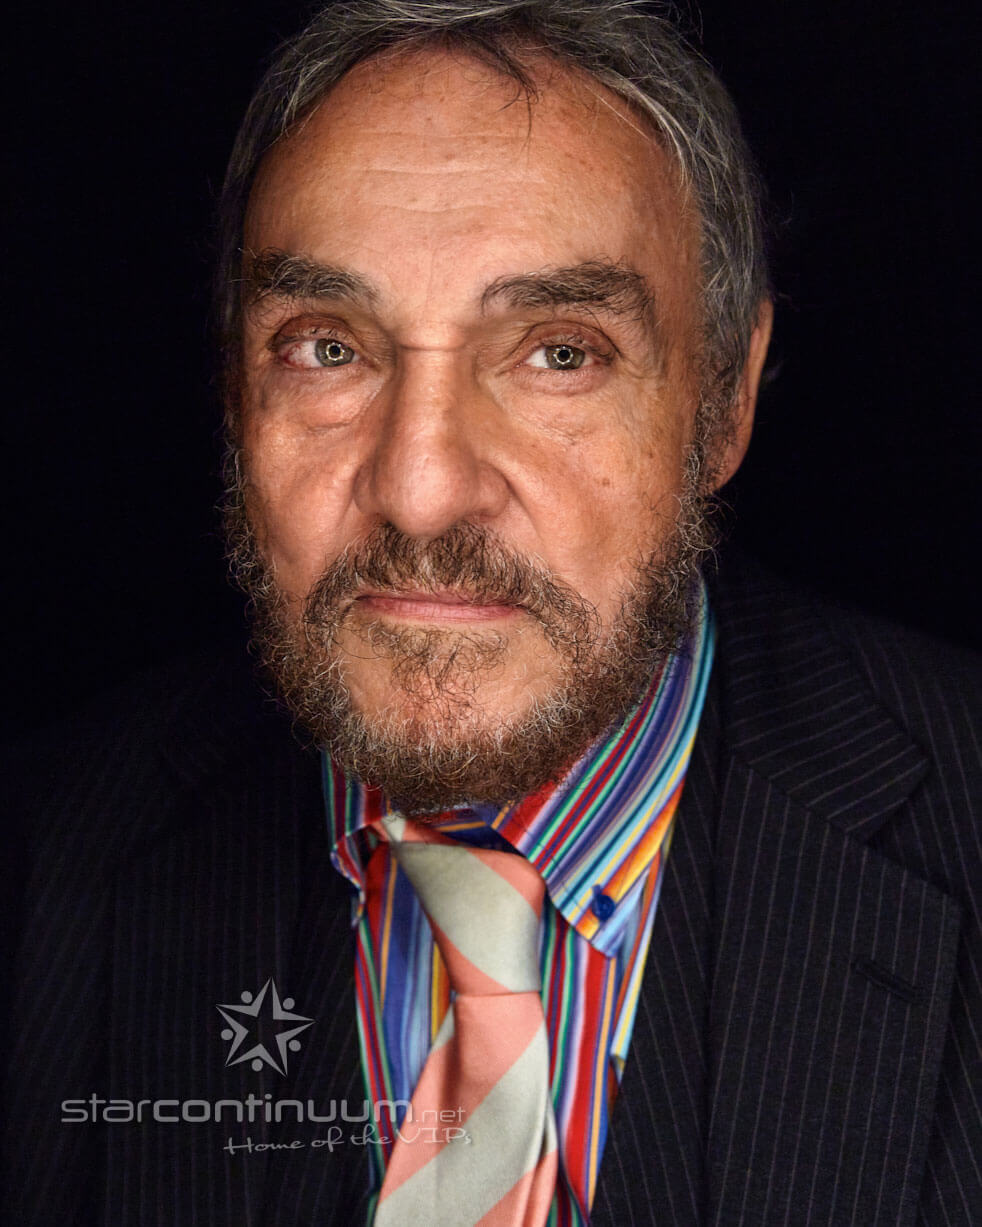 starcontinuum.net | Faces | John Rhys-Davies